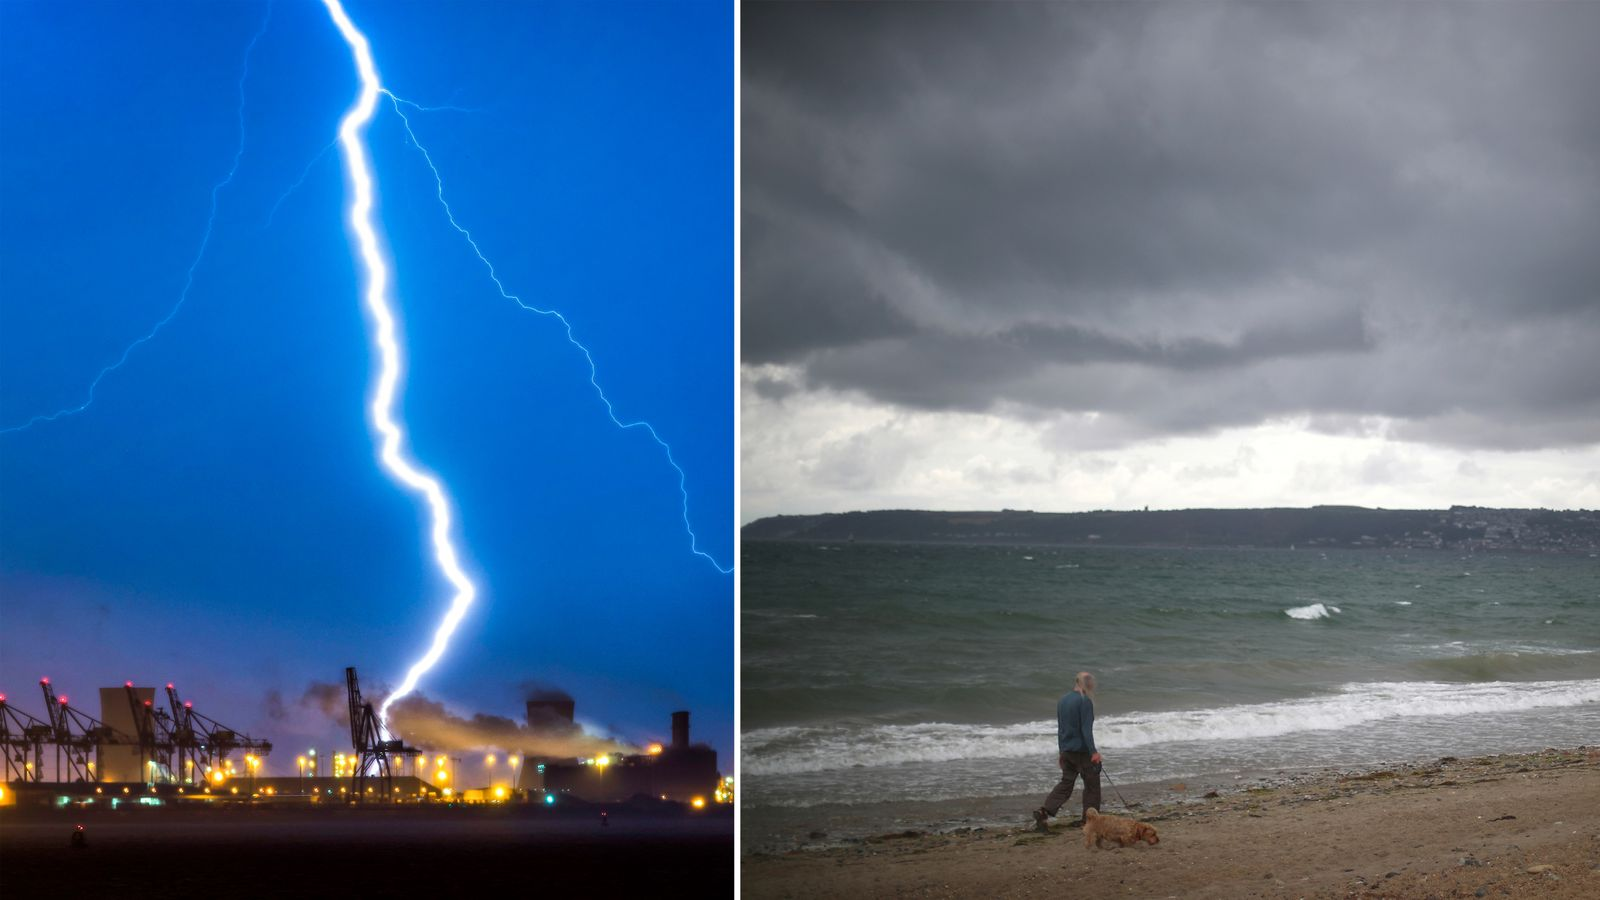 UK weather: 'Stark contrast' ahead as wet and windy